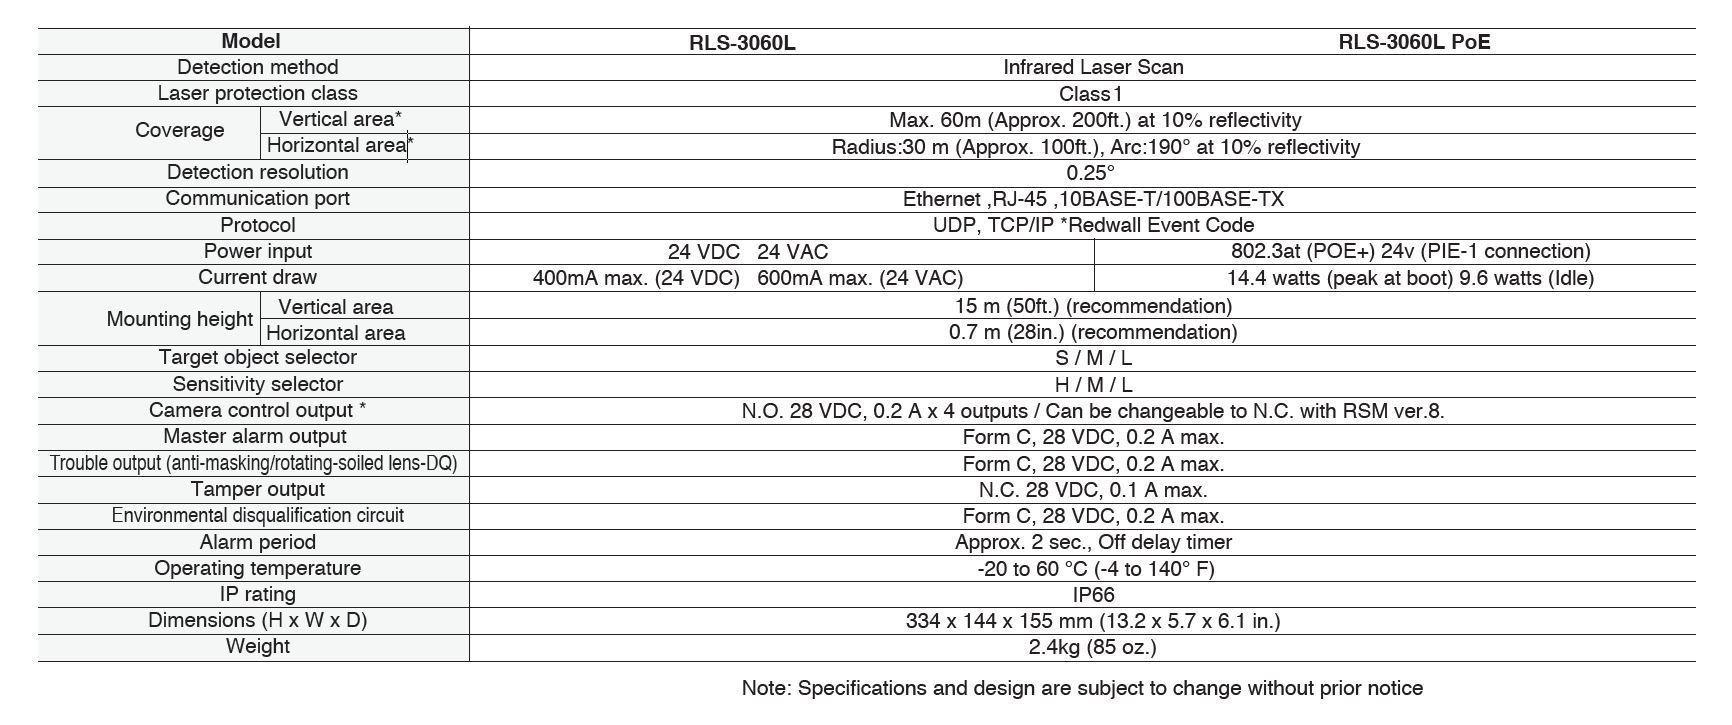 Optex Rls 3060L Specifications